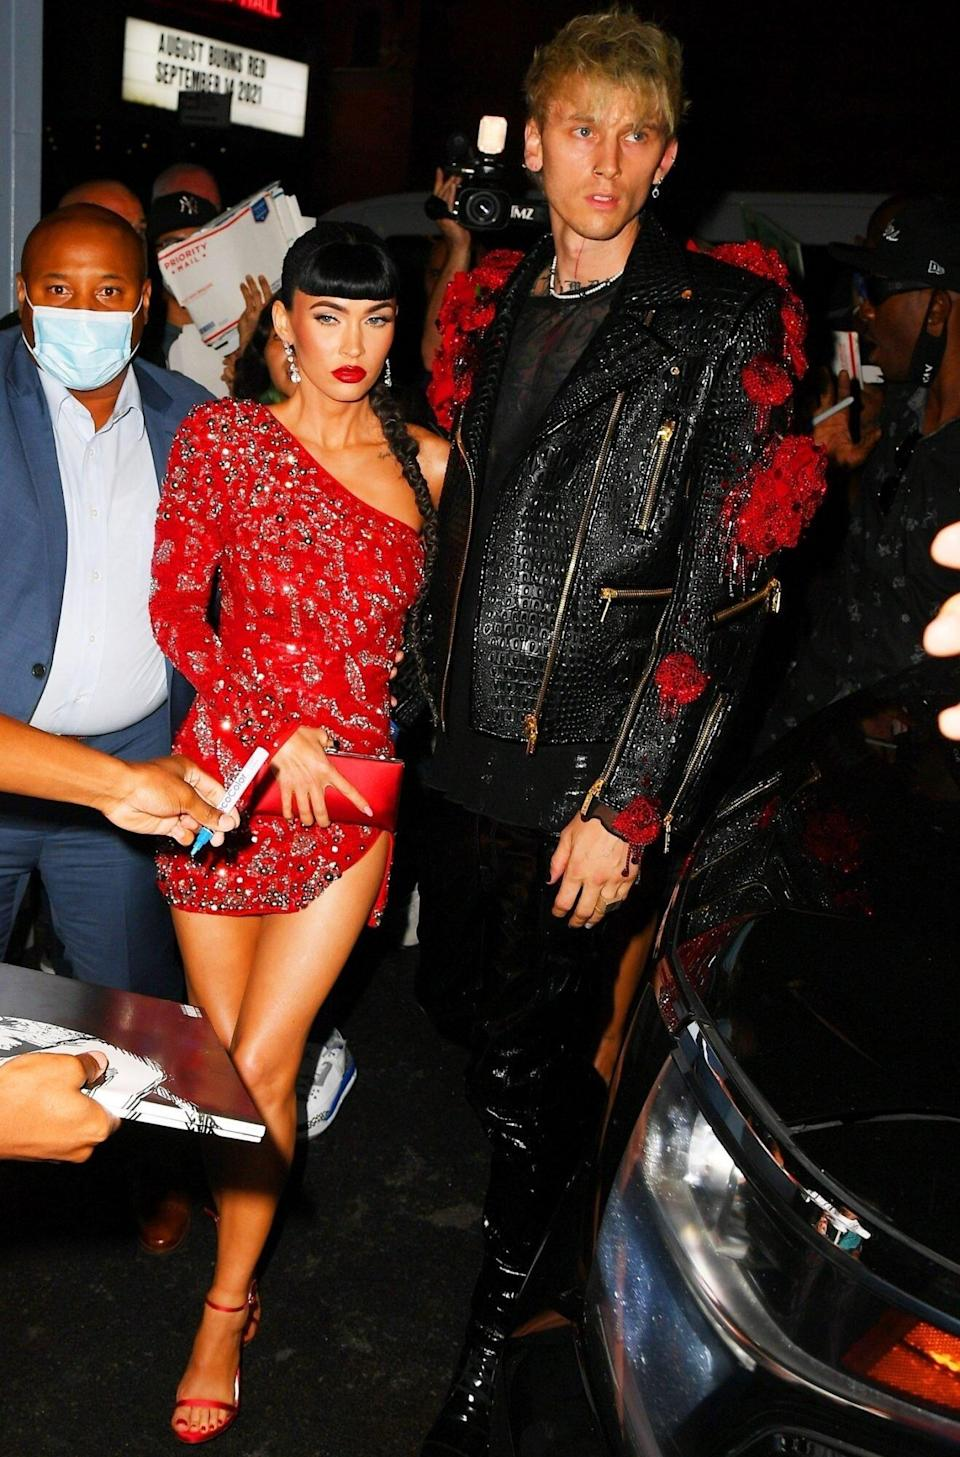 Megan Fox and Machine Gun Kelly make an appearance at Justin Bieber's after-party